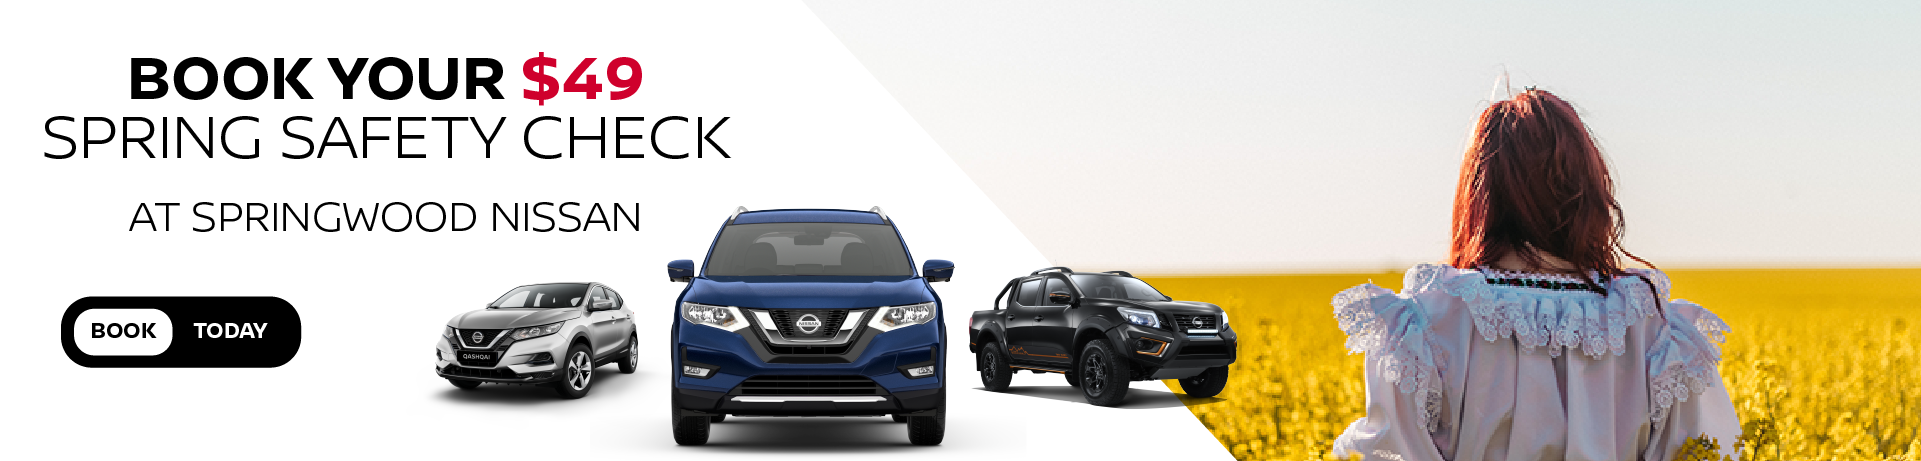 Book your $49 Spring Safety Check at Springwood Nissan